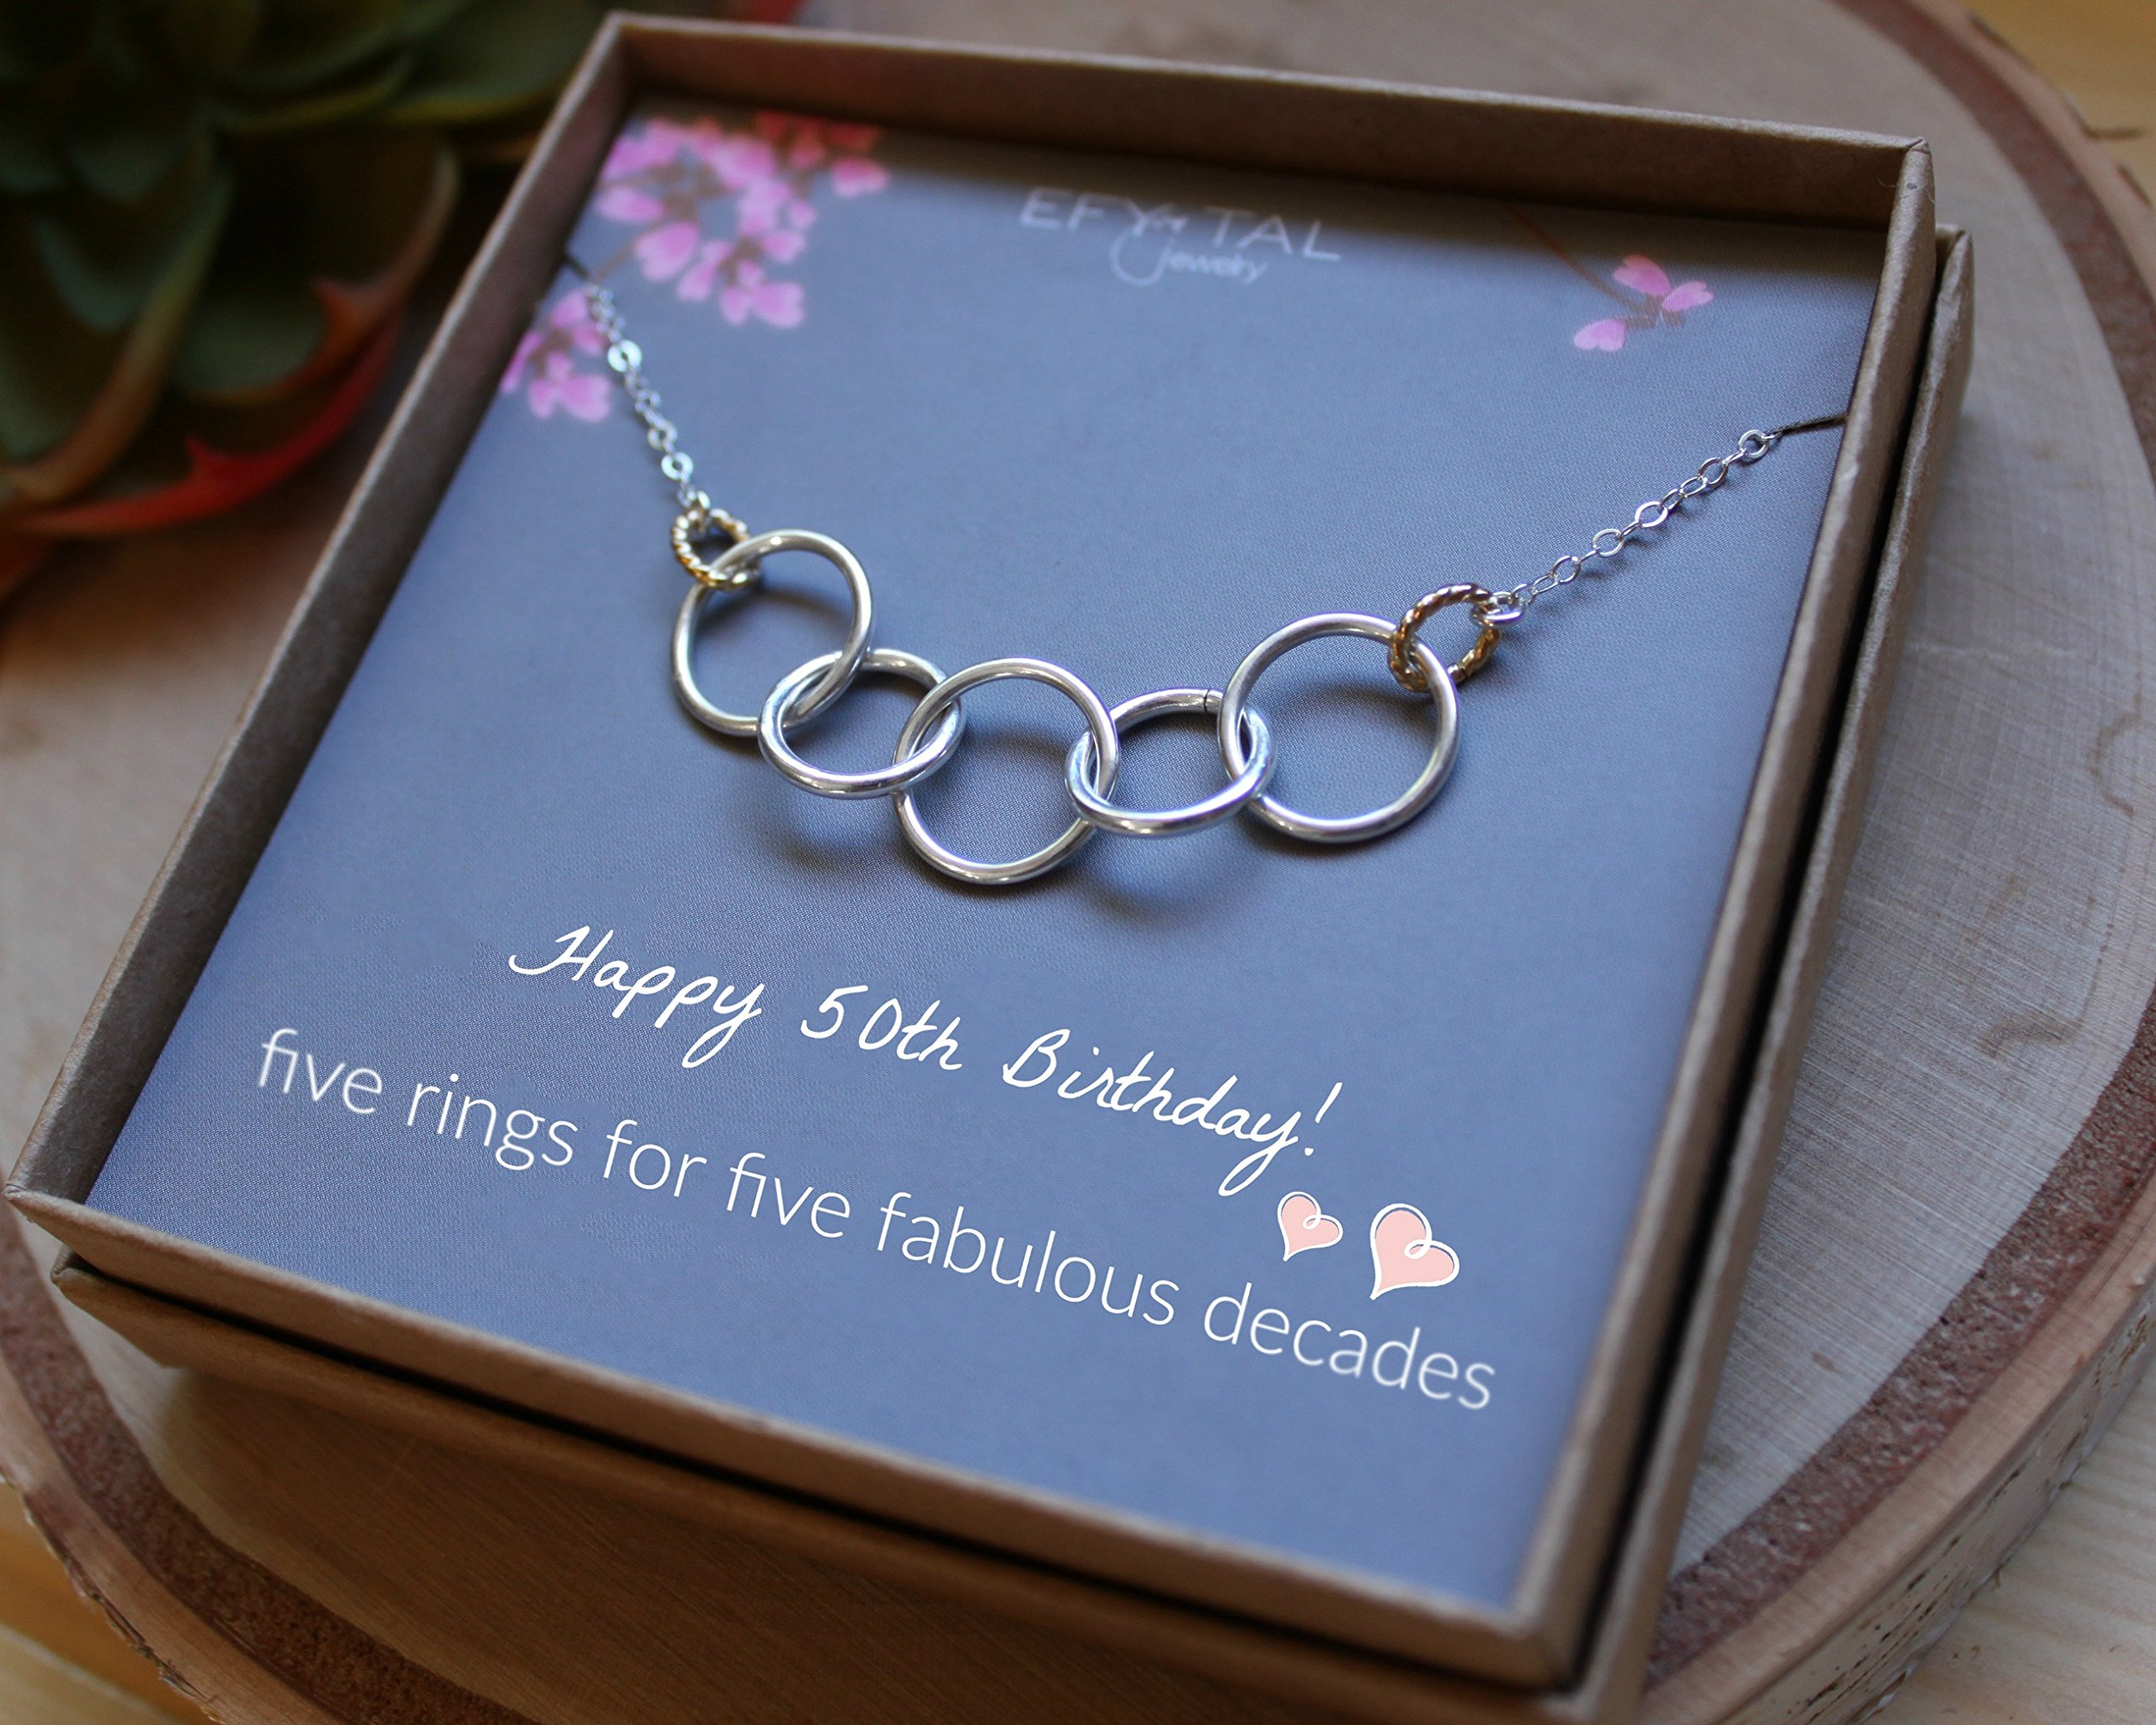 Efy Tal Jewelry Happy 50th Birthday Gifts for Women Necklace, Sterling Silver 5 Rings Five Decades Necklaces Gift Ideas by Efy Tal Jewelry (Image #4)